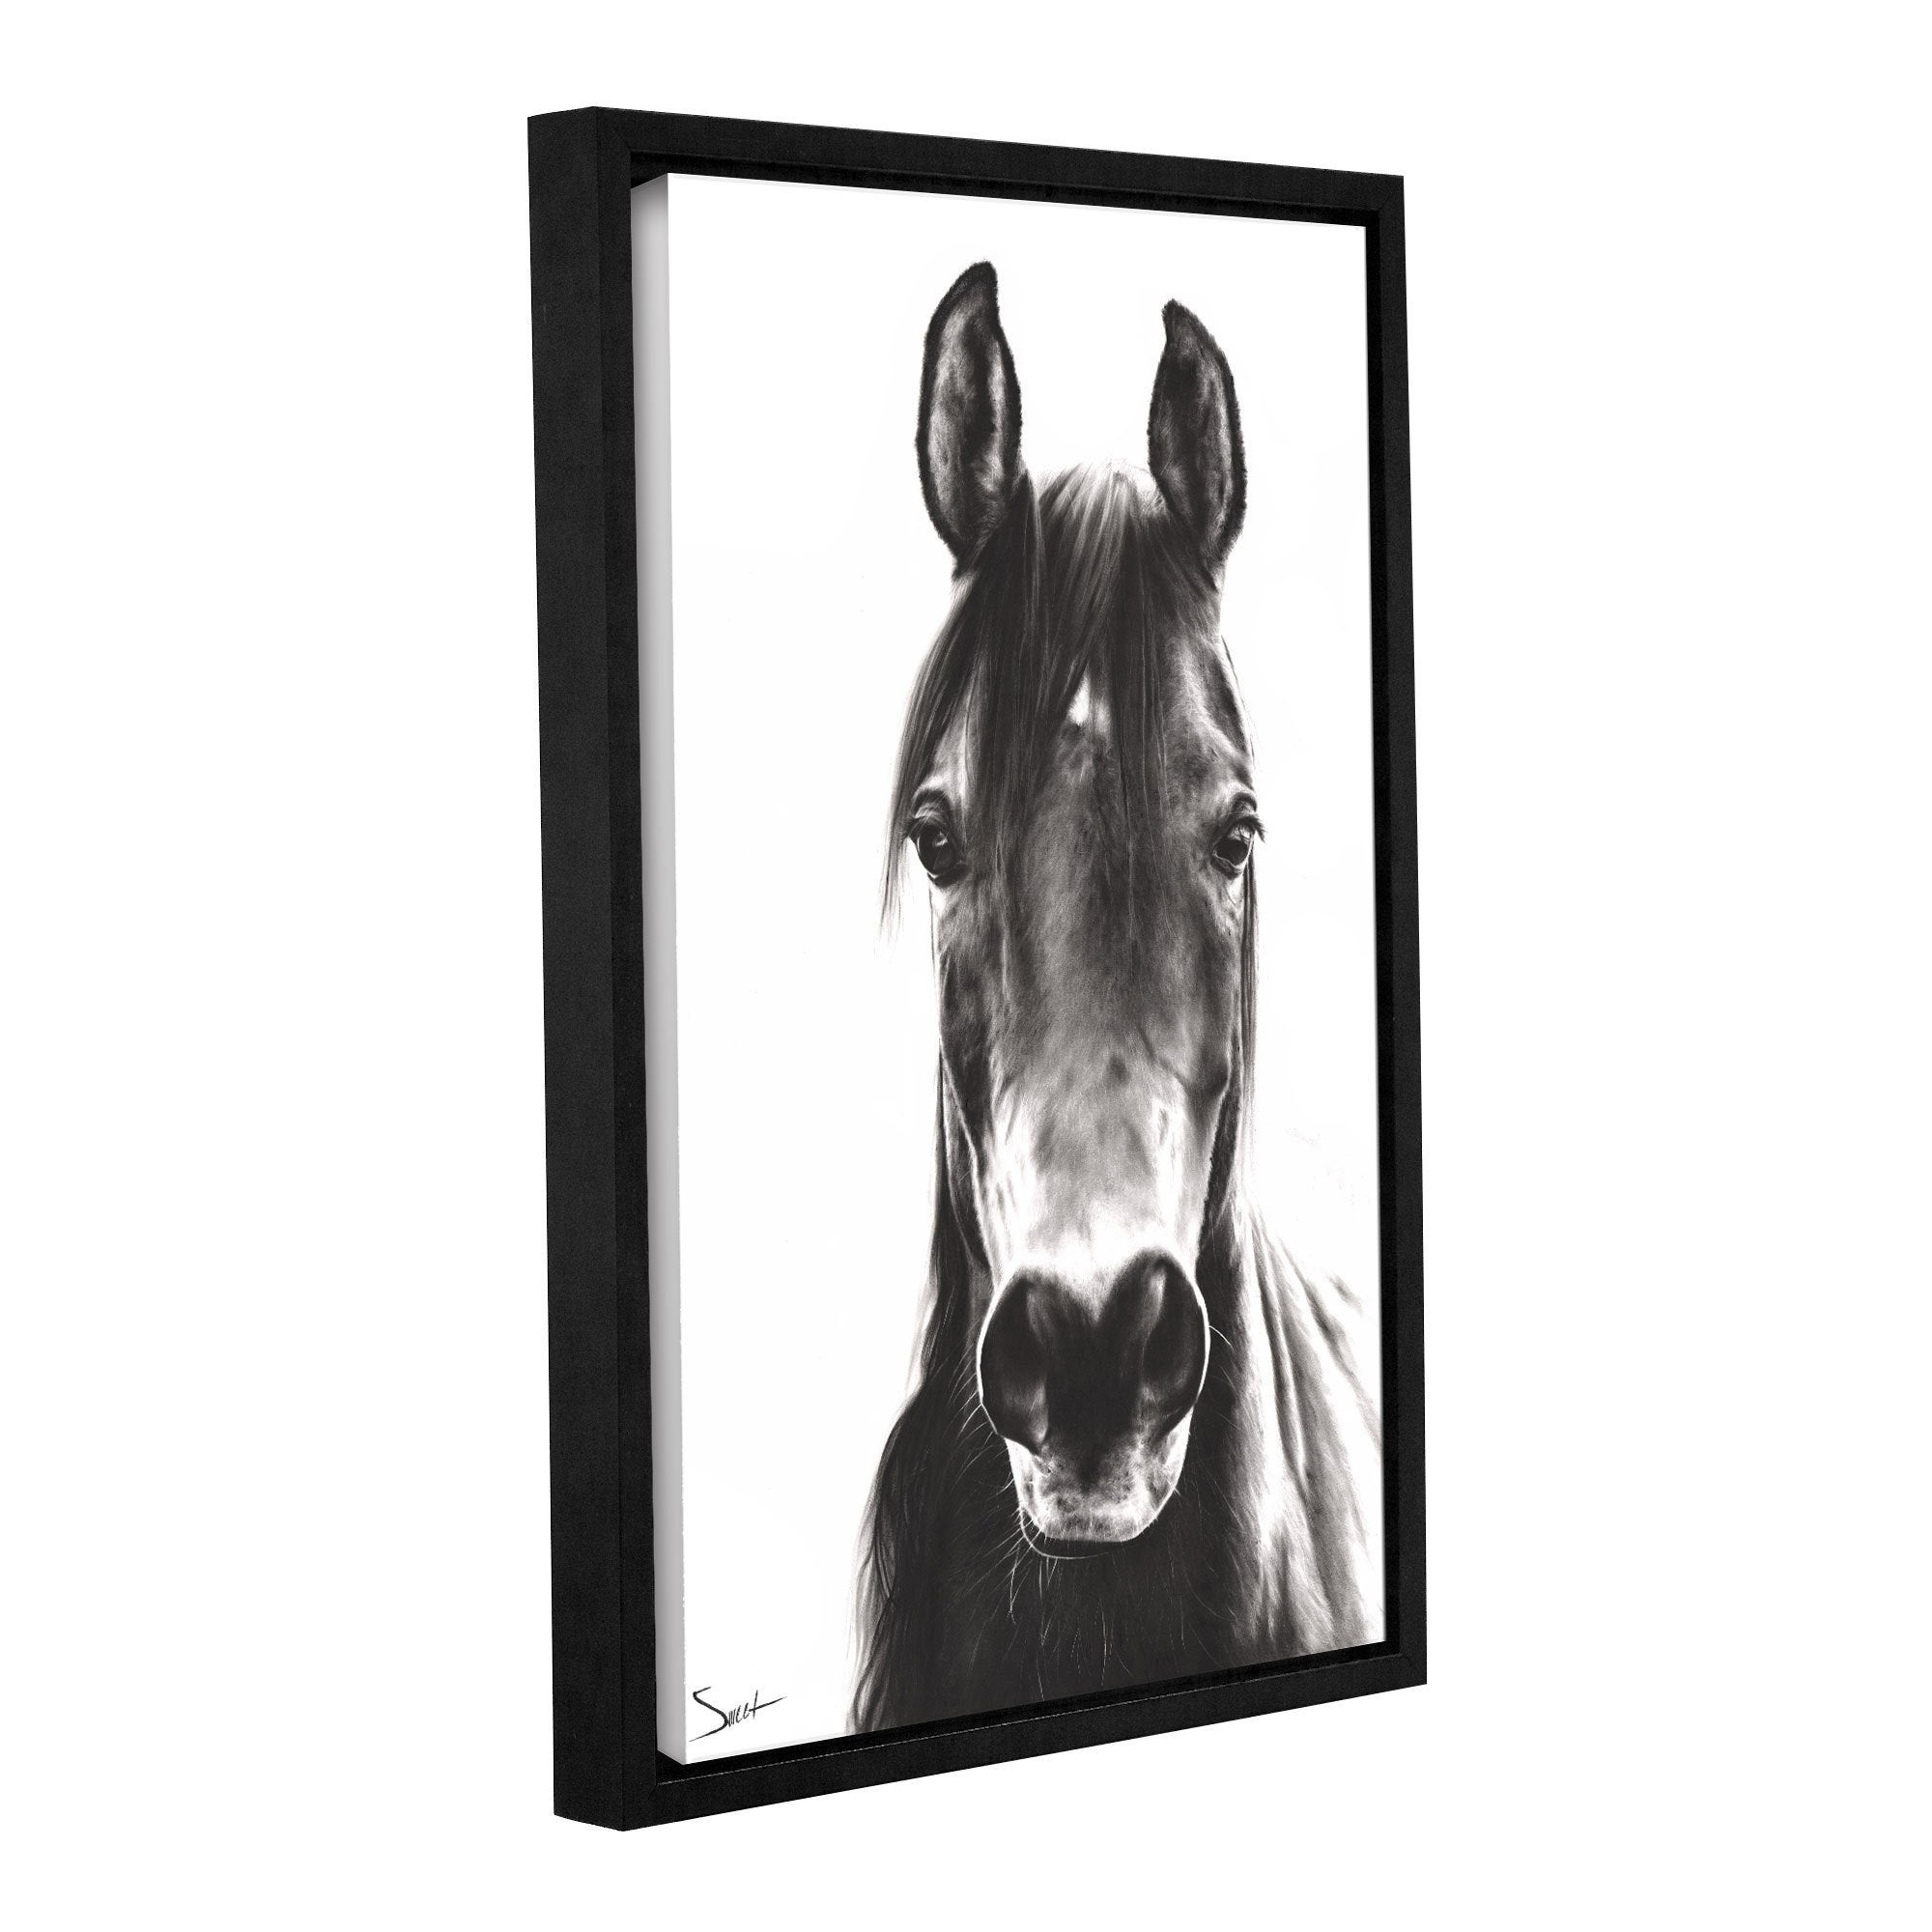 2000x2000 shop eric sweet 'horse portrait' gallery wrapped floater framed